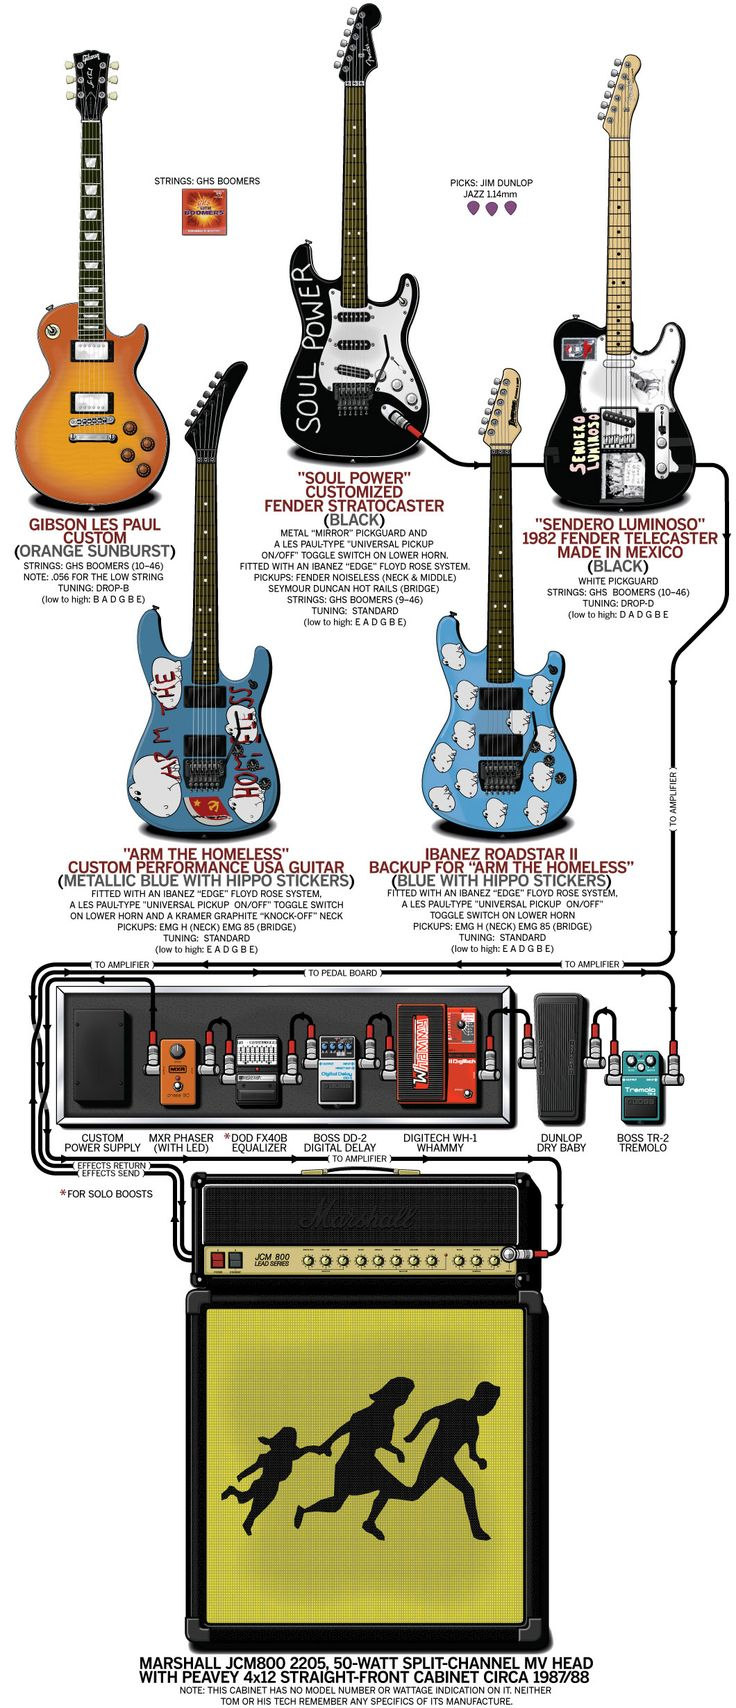 37 Best Guitar Images On Pinterest Bass Guitars Players Les Paul Toggle Switch Chrome For 3 Pickup Black Tip Ace Frehley A Detailed Gear Diagram Of Tom Morellos 2004 Audioslave Stage Setup That Traces The Signal Flow Equipment In His Rig